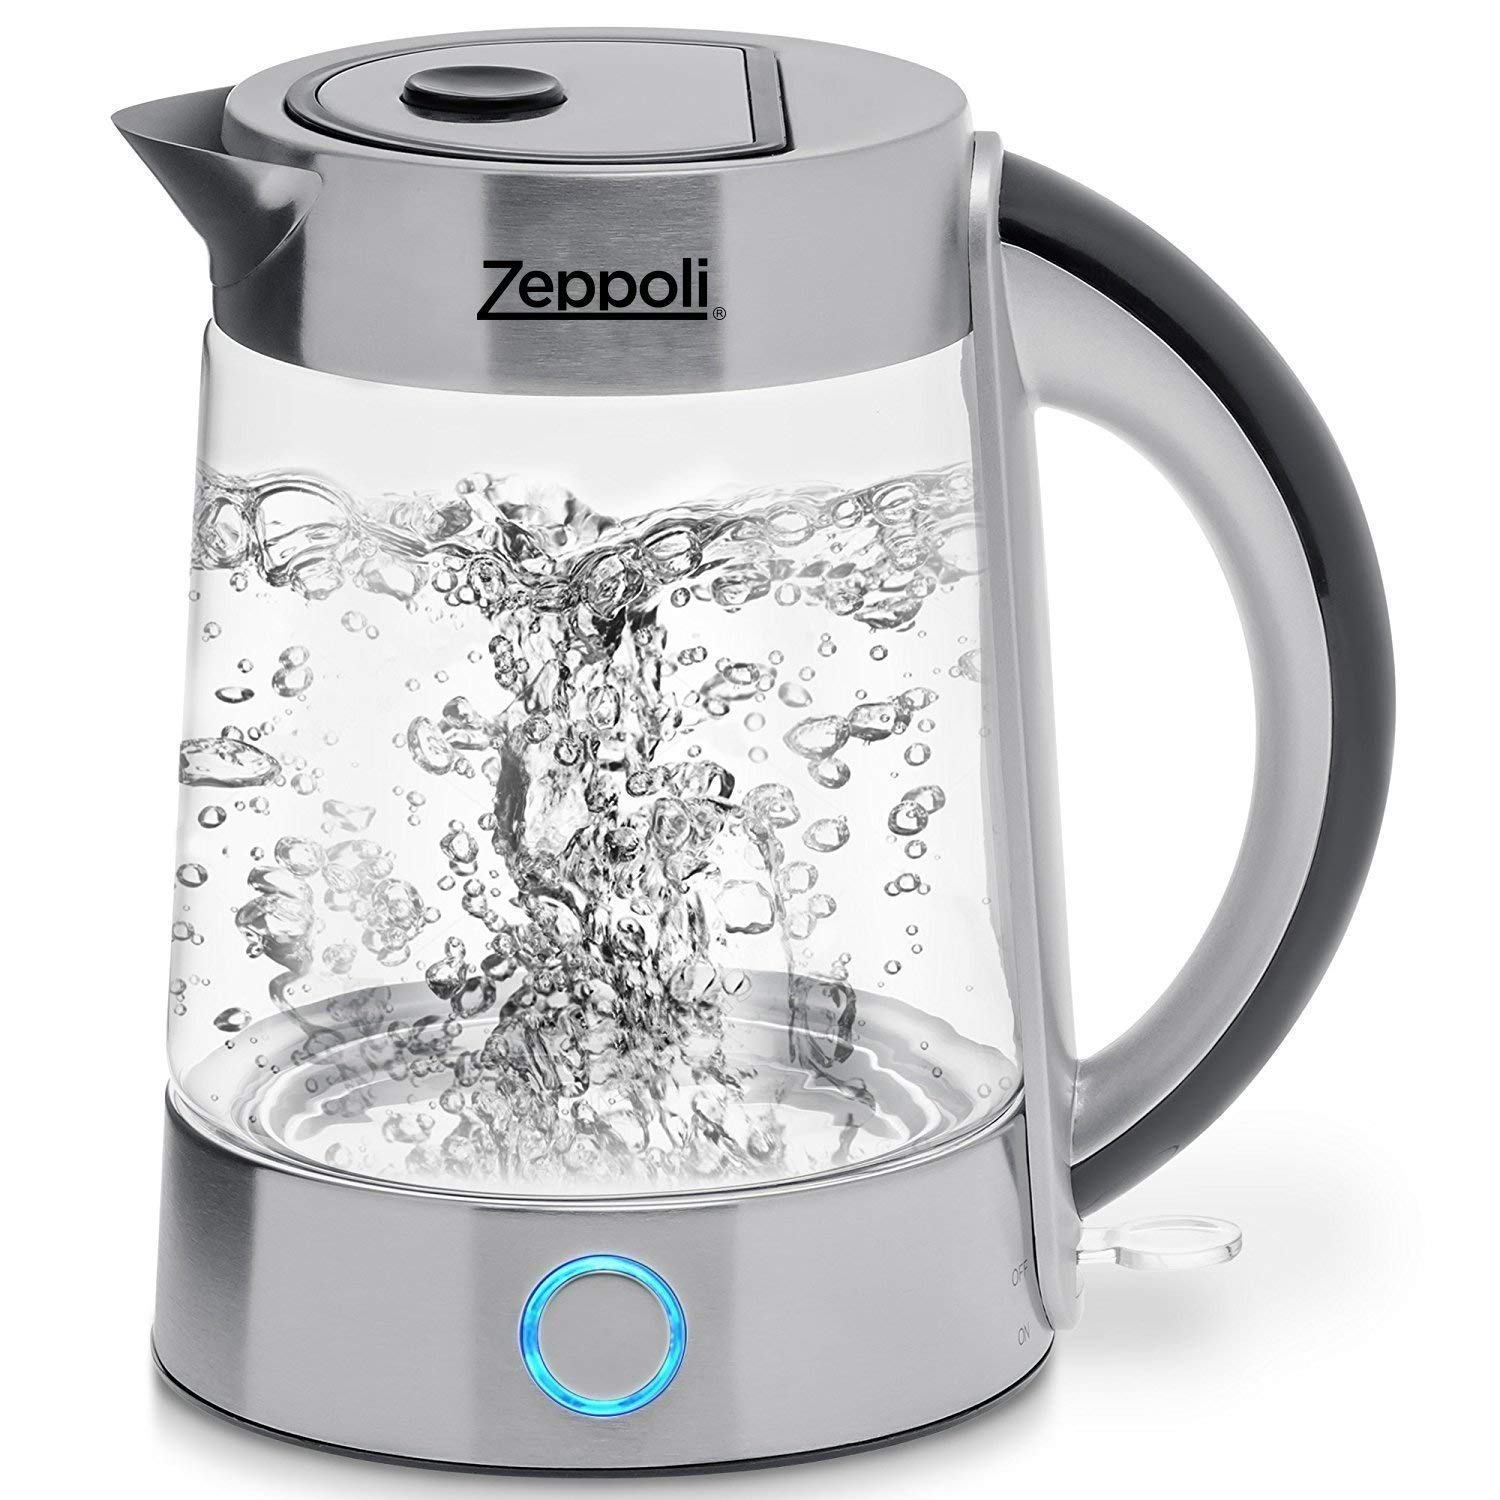 Zeppoli Electric Kettle (BPA Free)